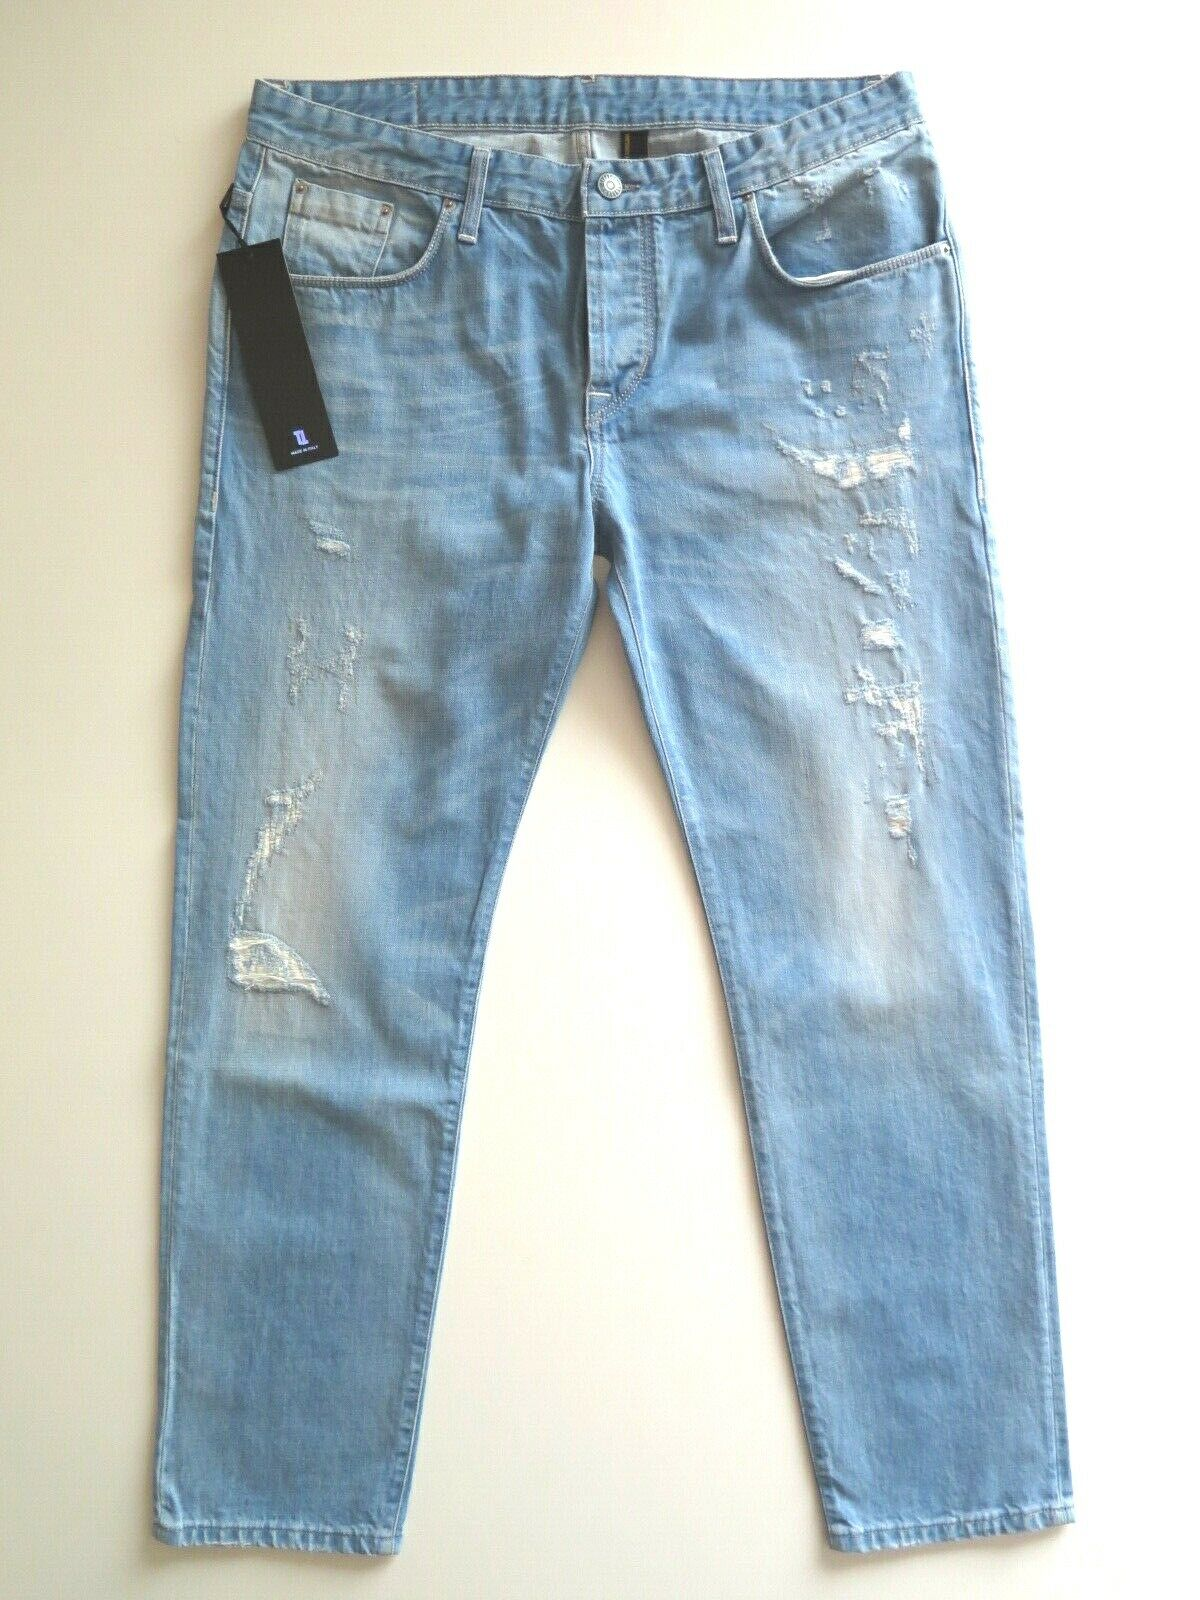 TAKESHY KUpinkWA Men's Designer Distressed Tapered Jeans Made in  NEW